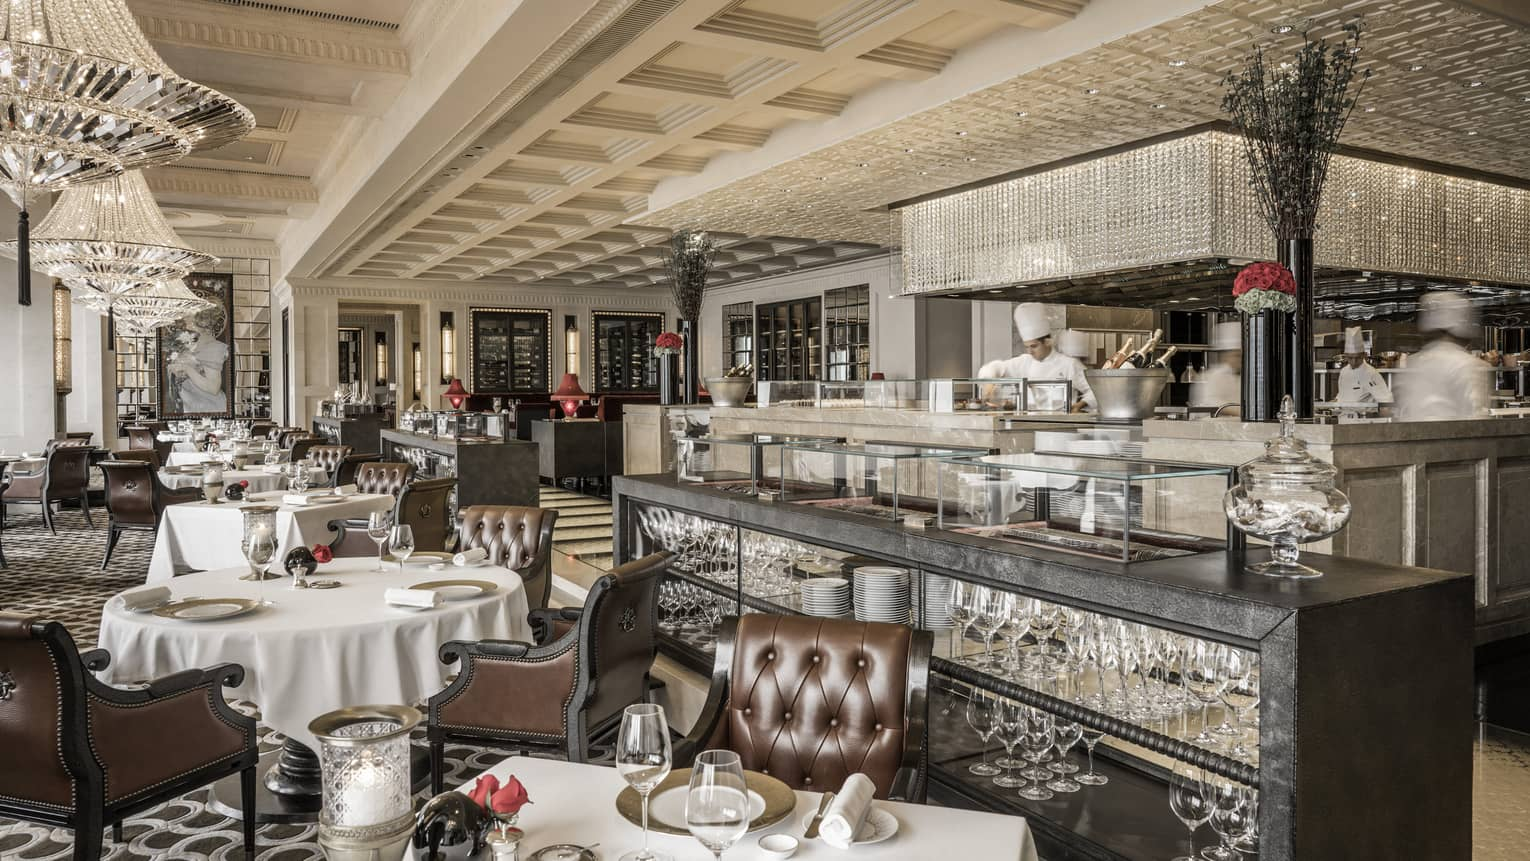 Contemporary chinoiserie dining room tables, leather chairs, chefs behind marble counter with crystal overhang